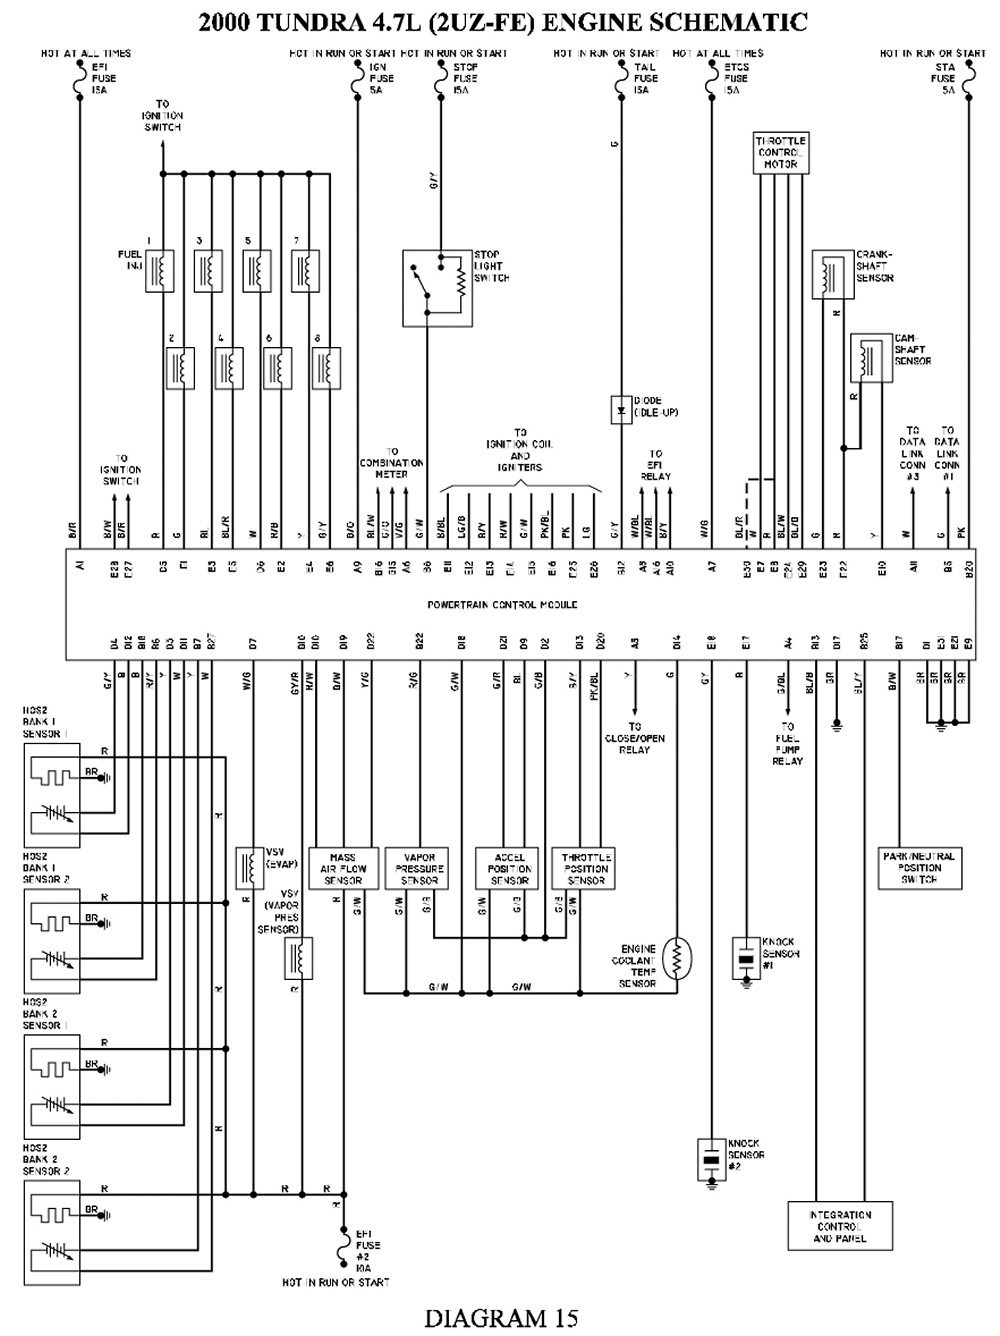 01 Tundra Wiring Diagram - Wiring Diagram Name - Tundra Trailer Wiring Diagram